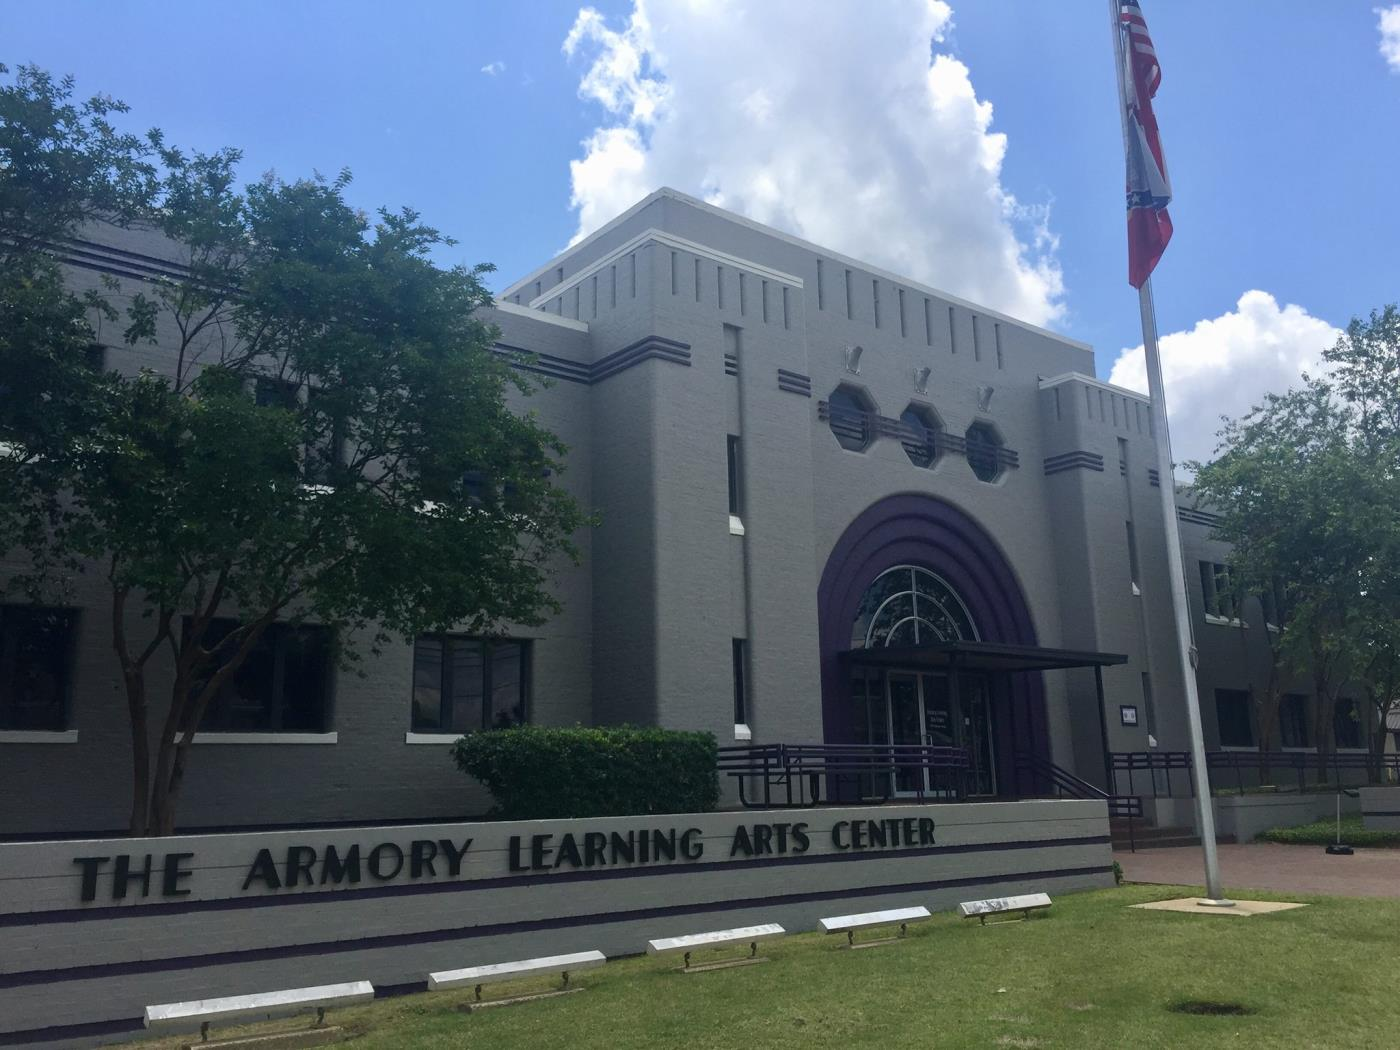 Armory Learning Arts